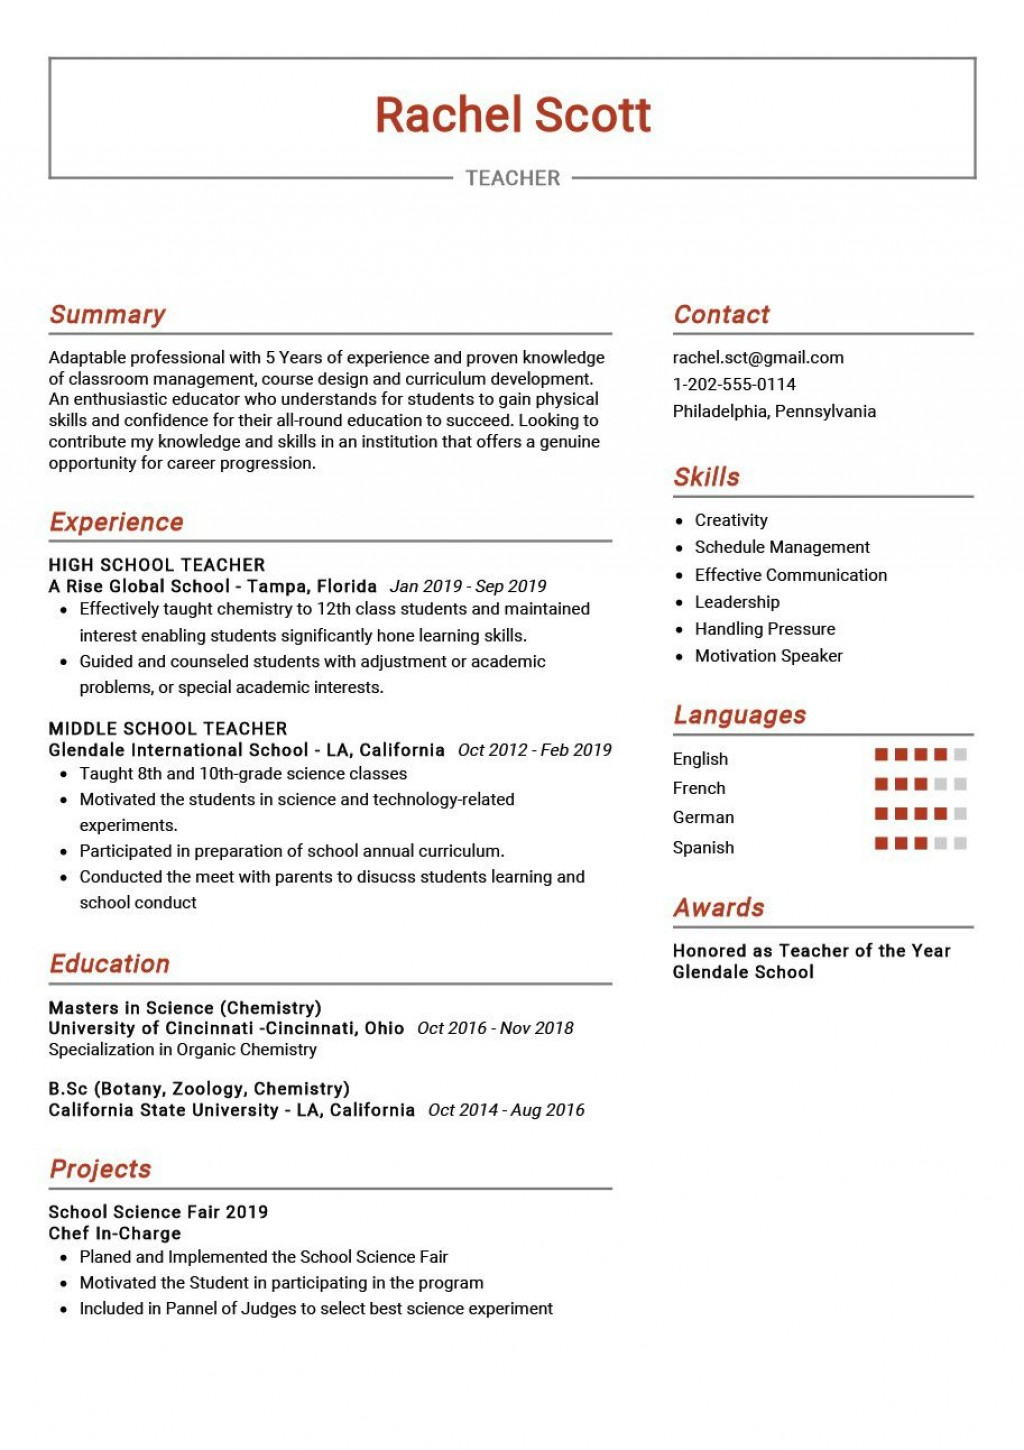 009 Unbelievable Resume Example For Teaching Job Idea  Jobs Format Sample Curriculum Vitae Profession In IndiaLarge